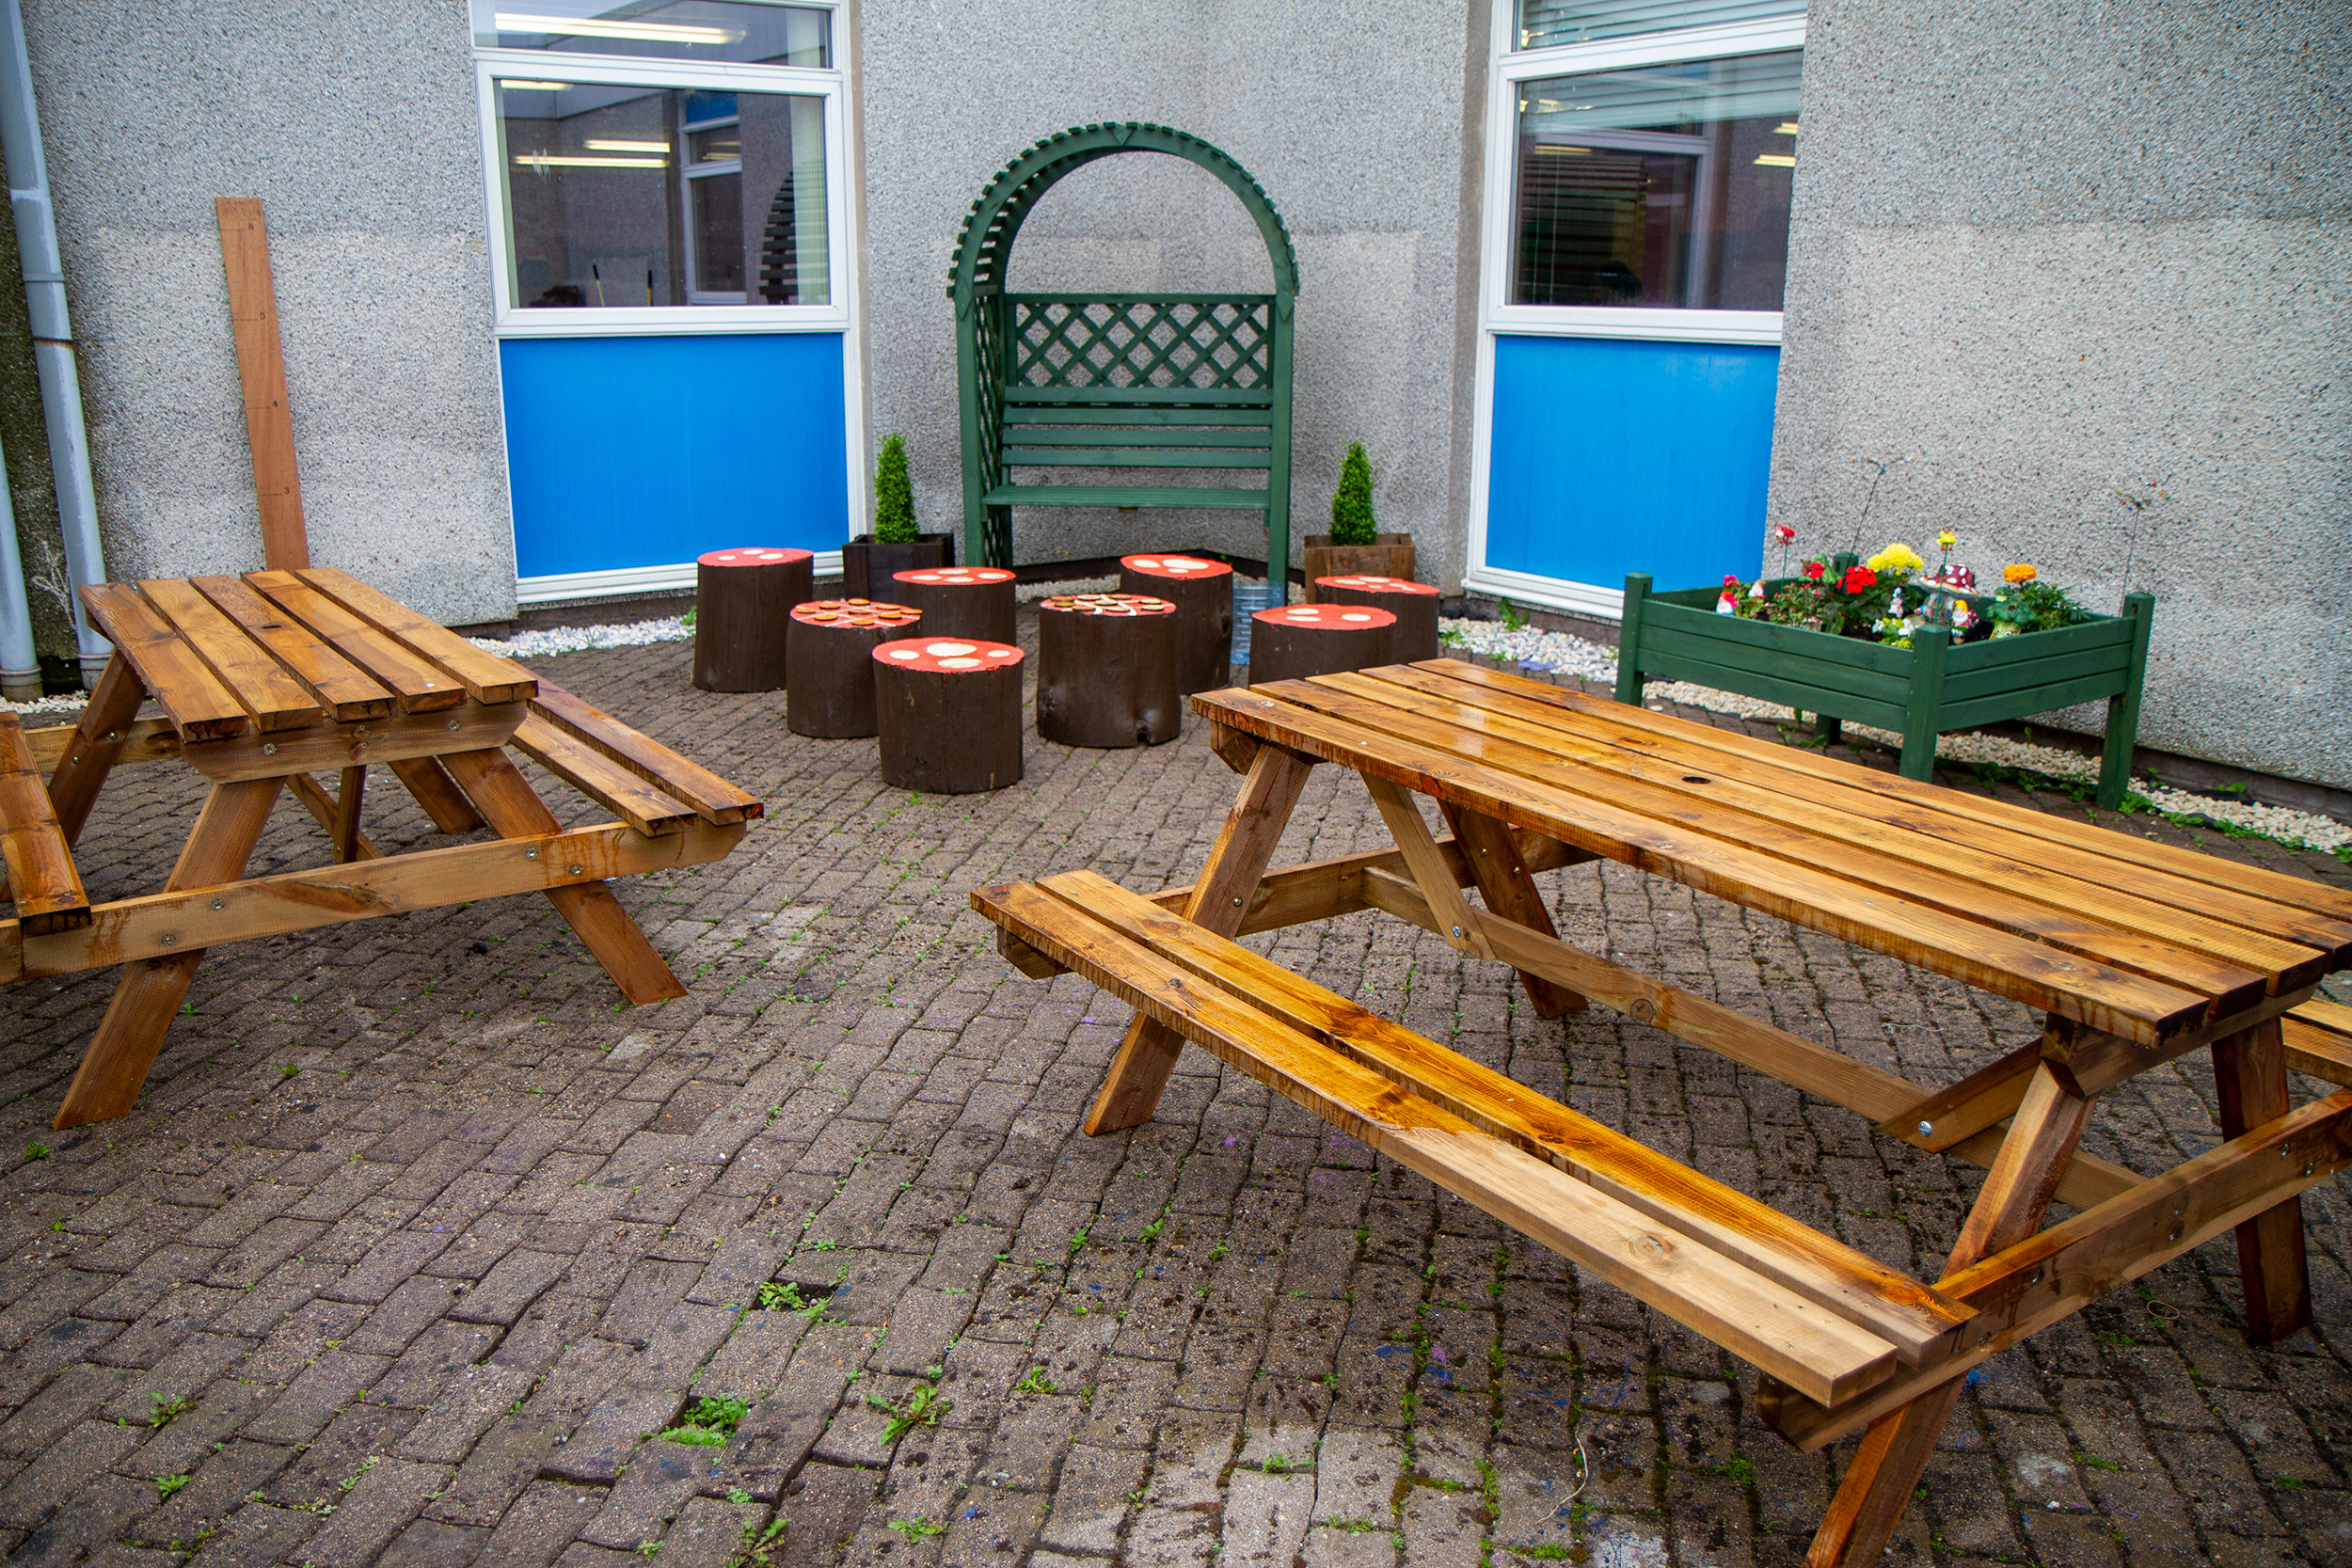 The Foyer Reach team 8 renovated an outdoor area of Dales Park School, Peterhead